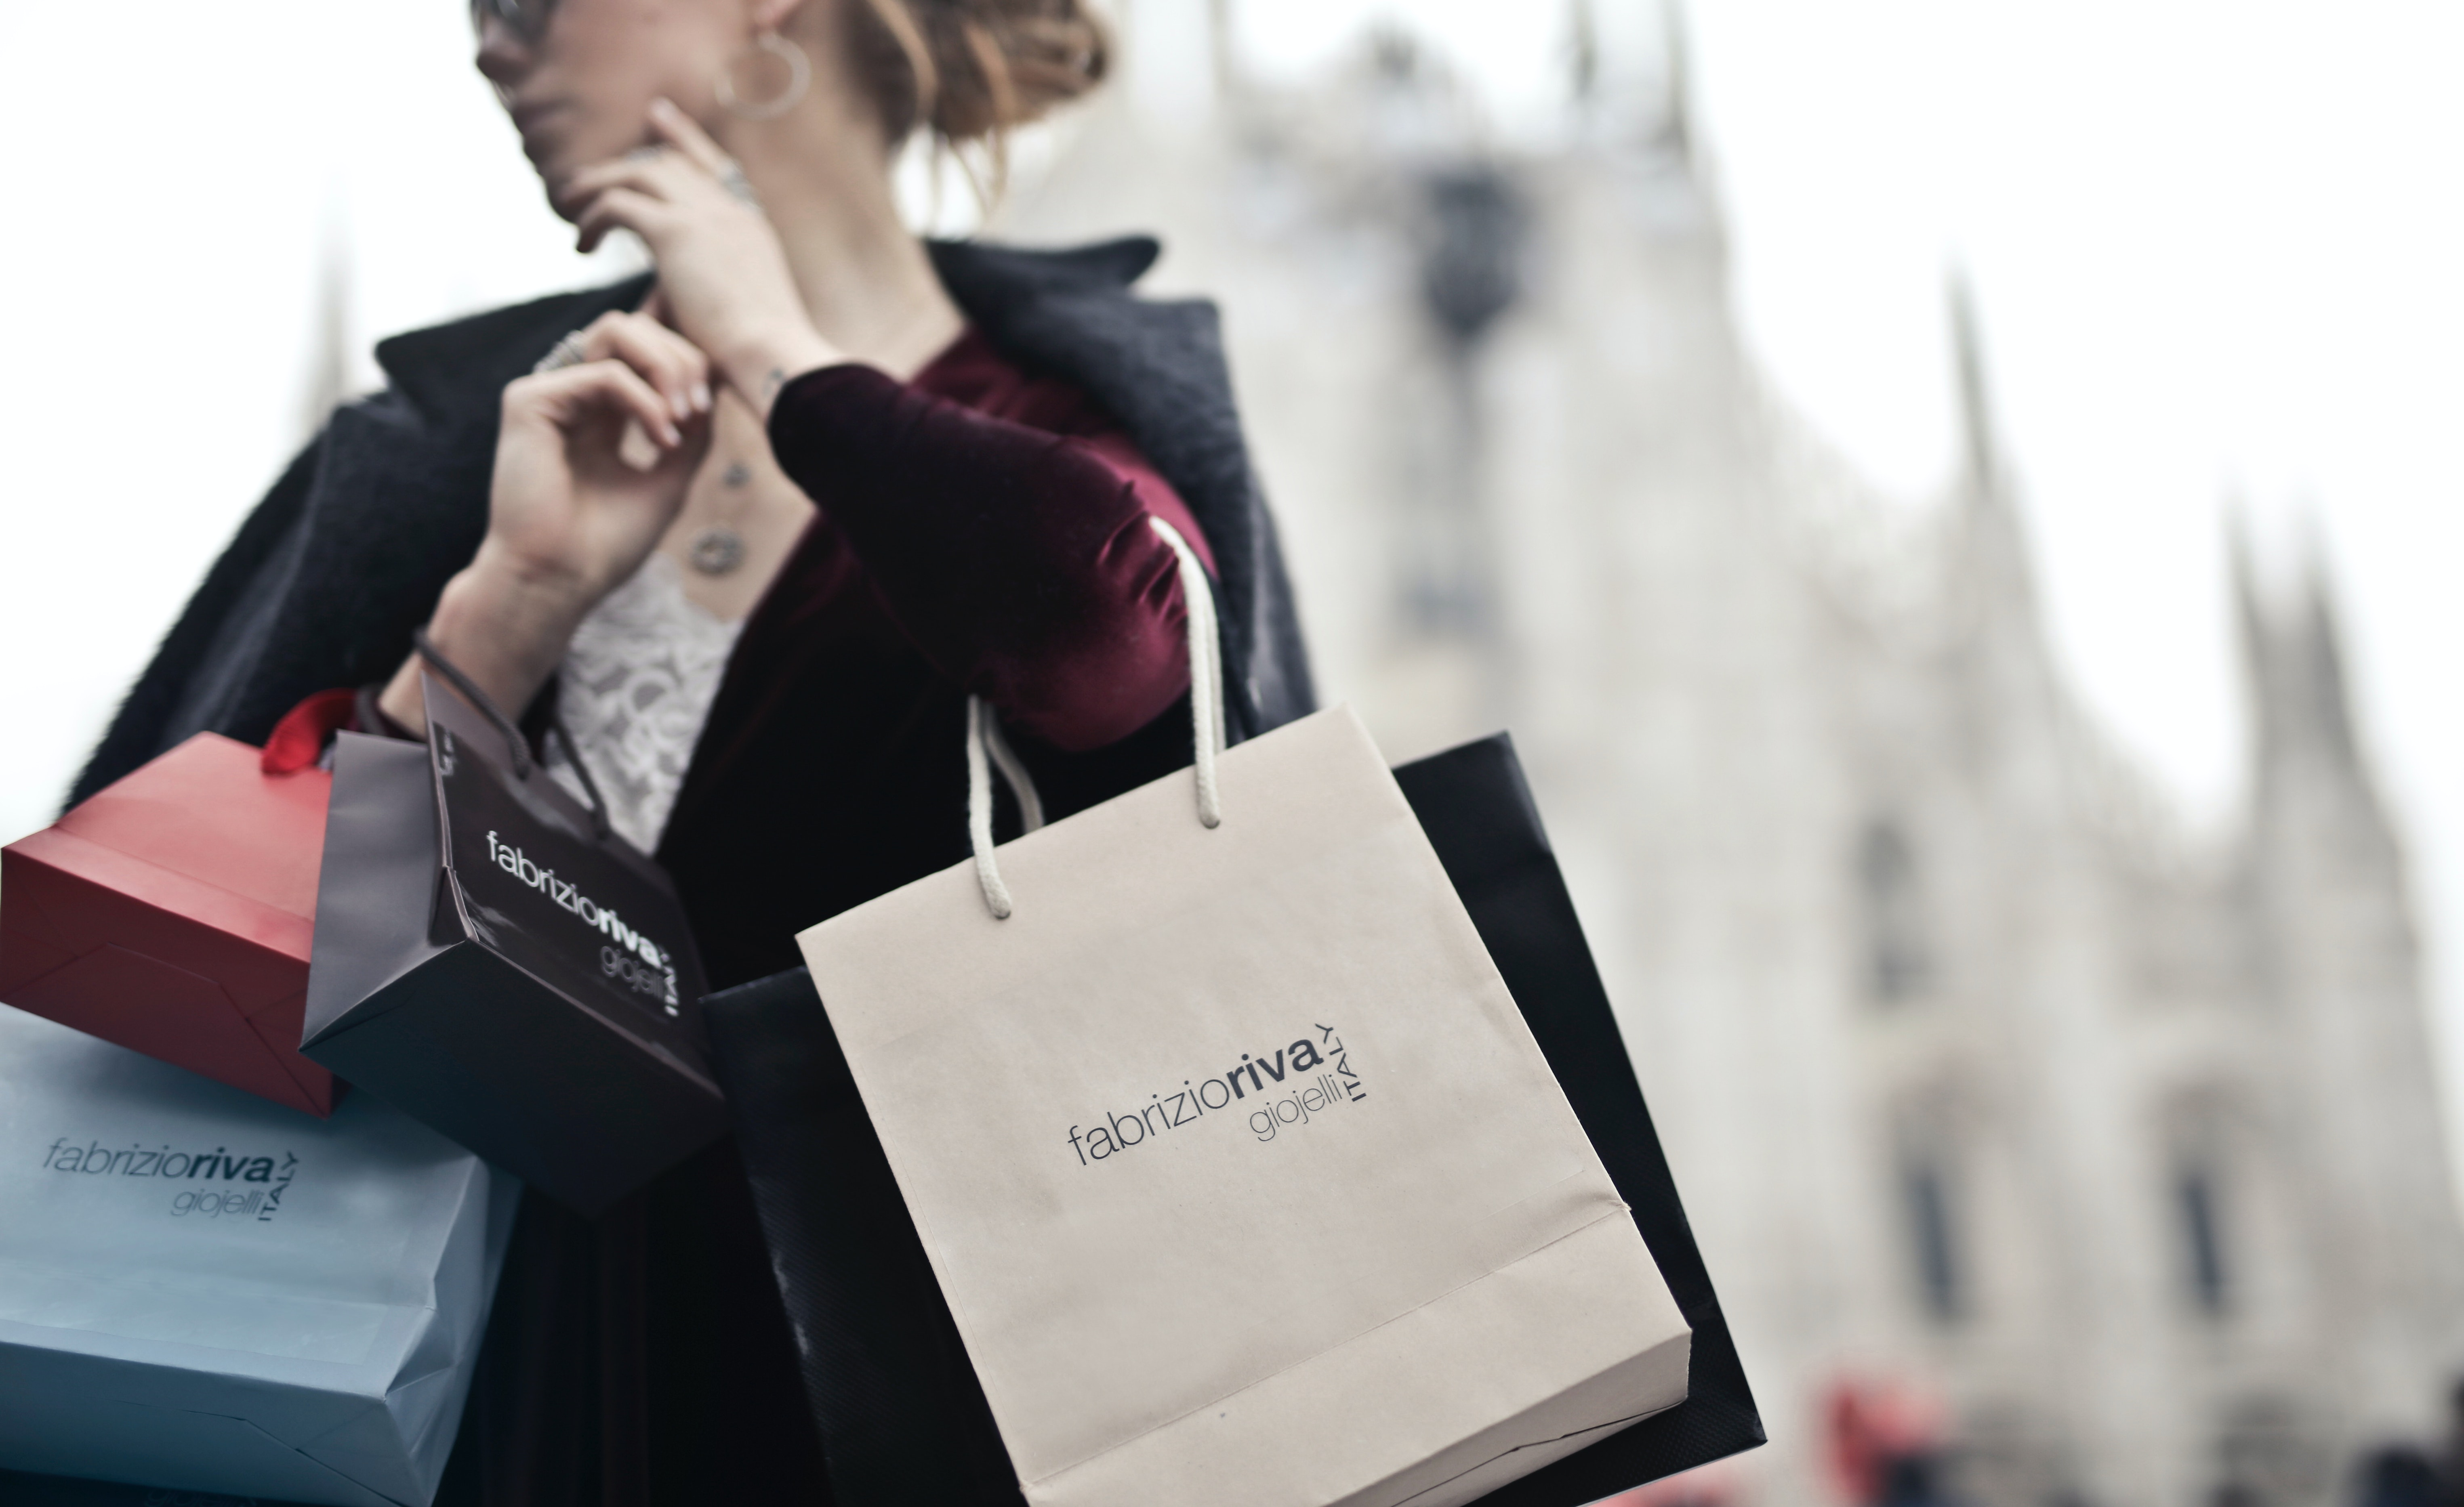 5 Easy Shopping Tips To Get You Through The Holidays